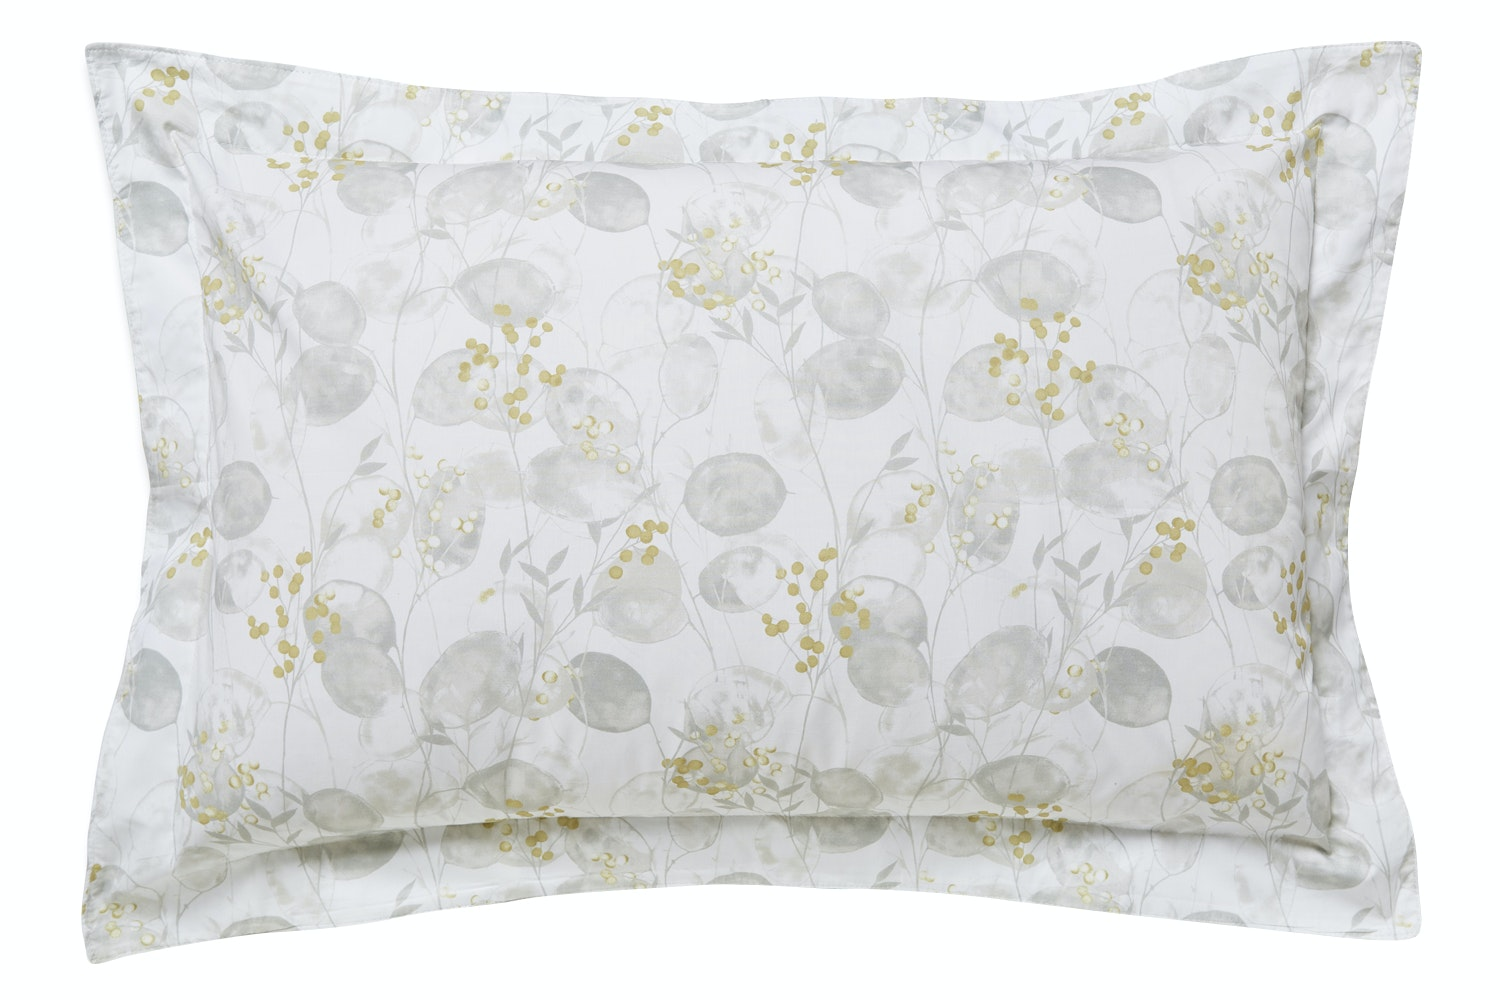 Honesty Cotton Print Neutral Oxford Pillow Case